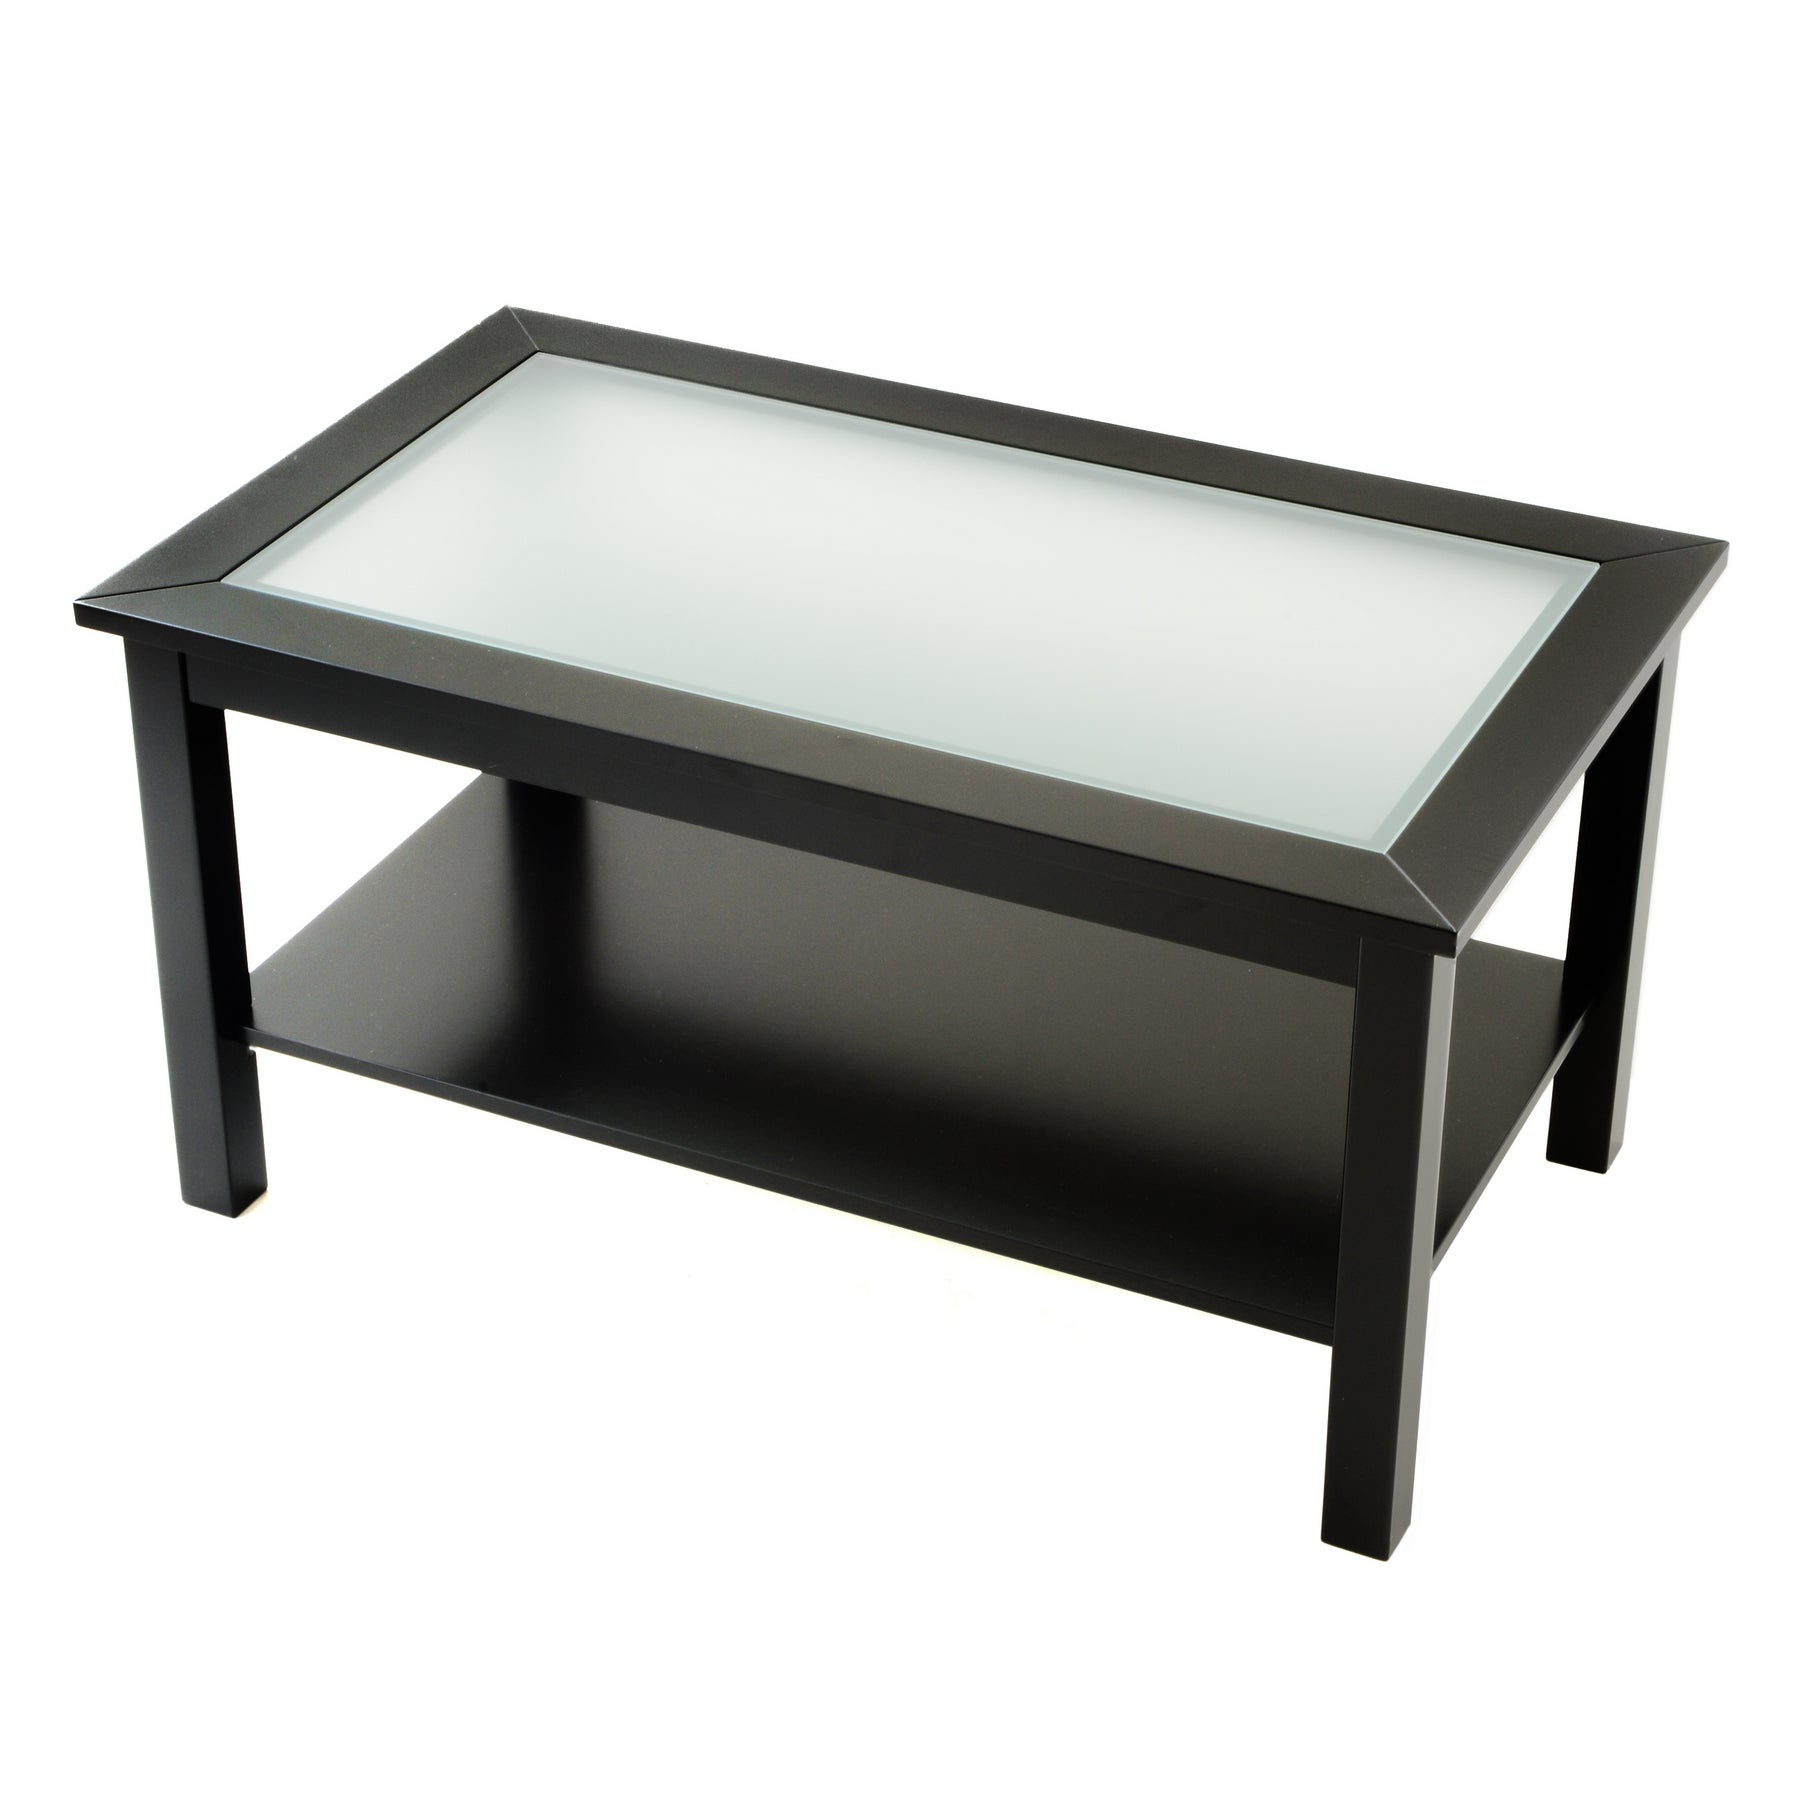 Glass Top Coffee Tables: Shop Bianco Collection Black Glass Top Coffee Table